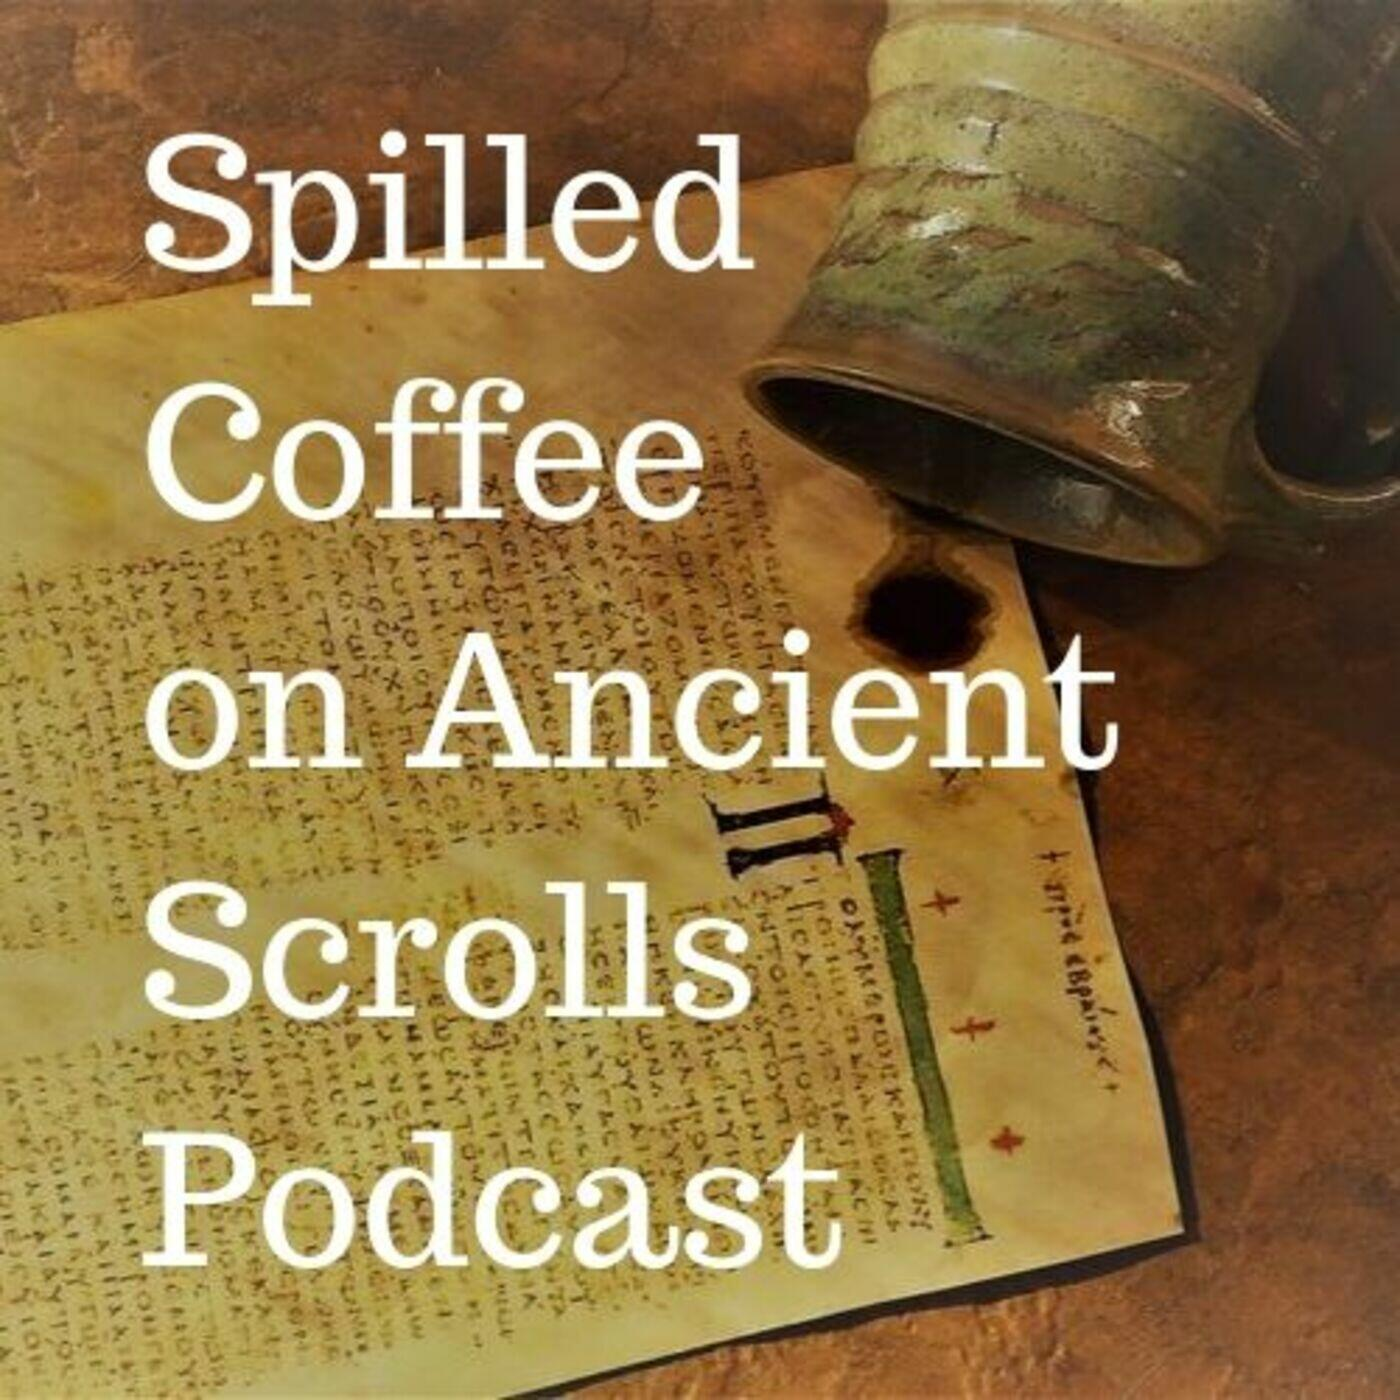 Spilled Coffee on Ancient Scrolls Podcast